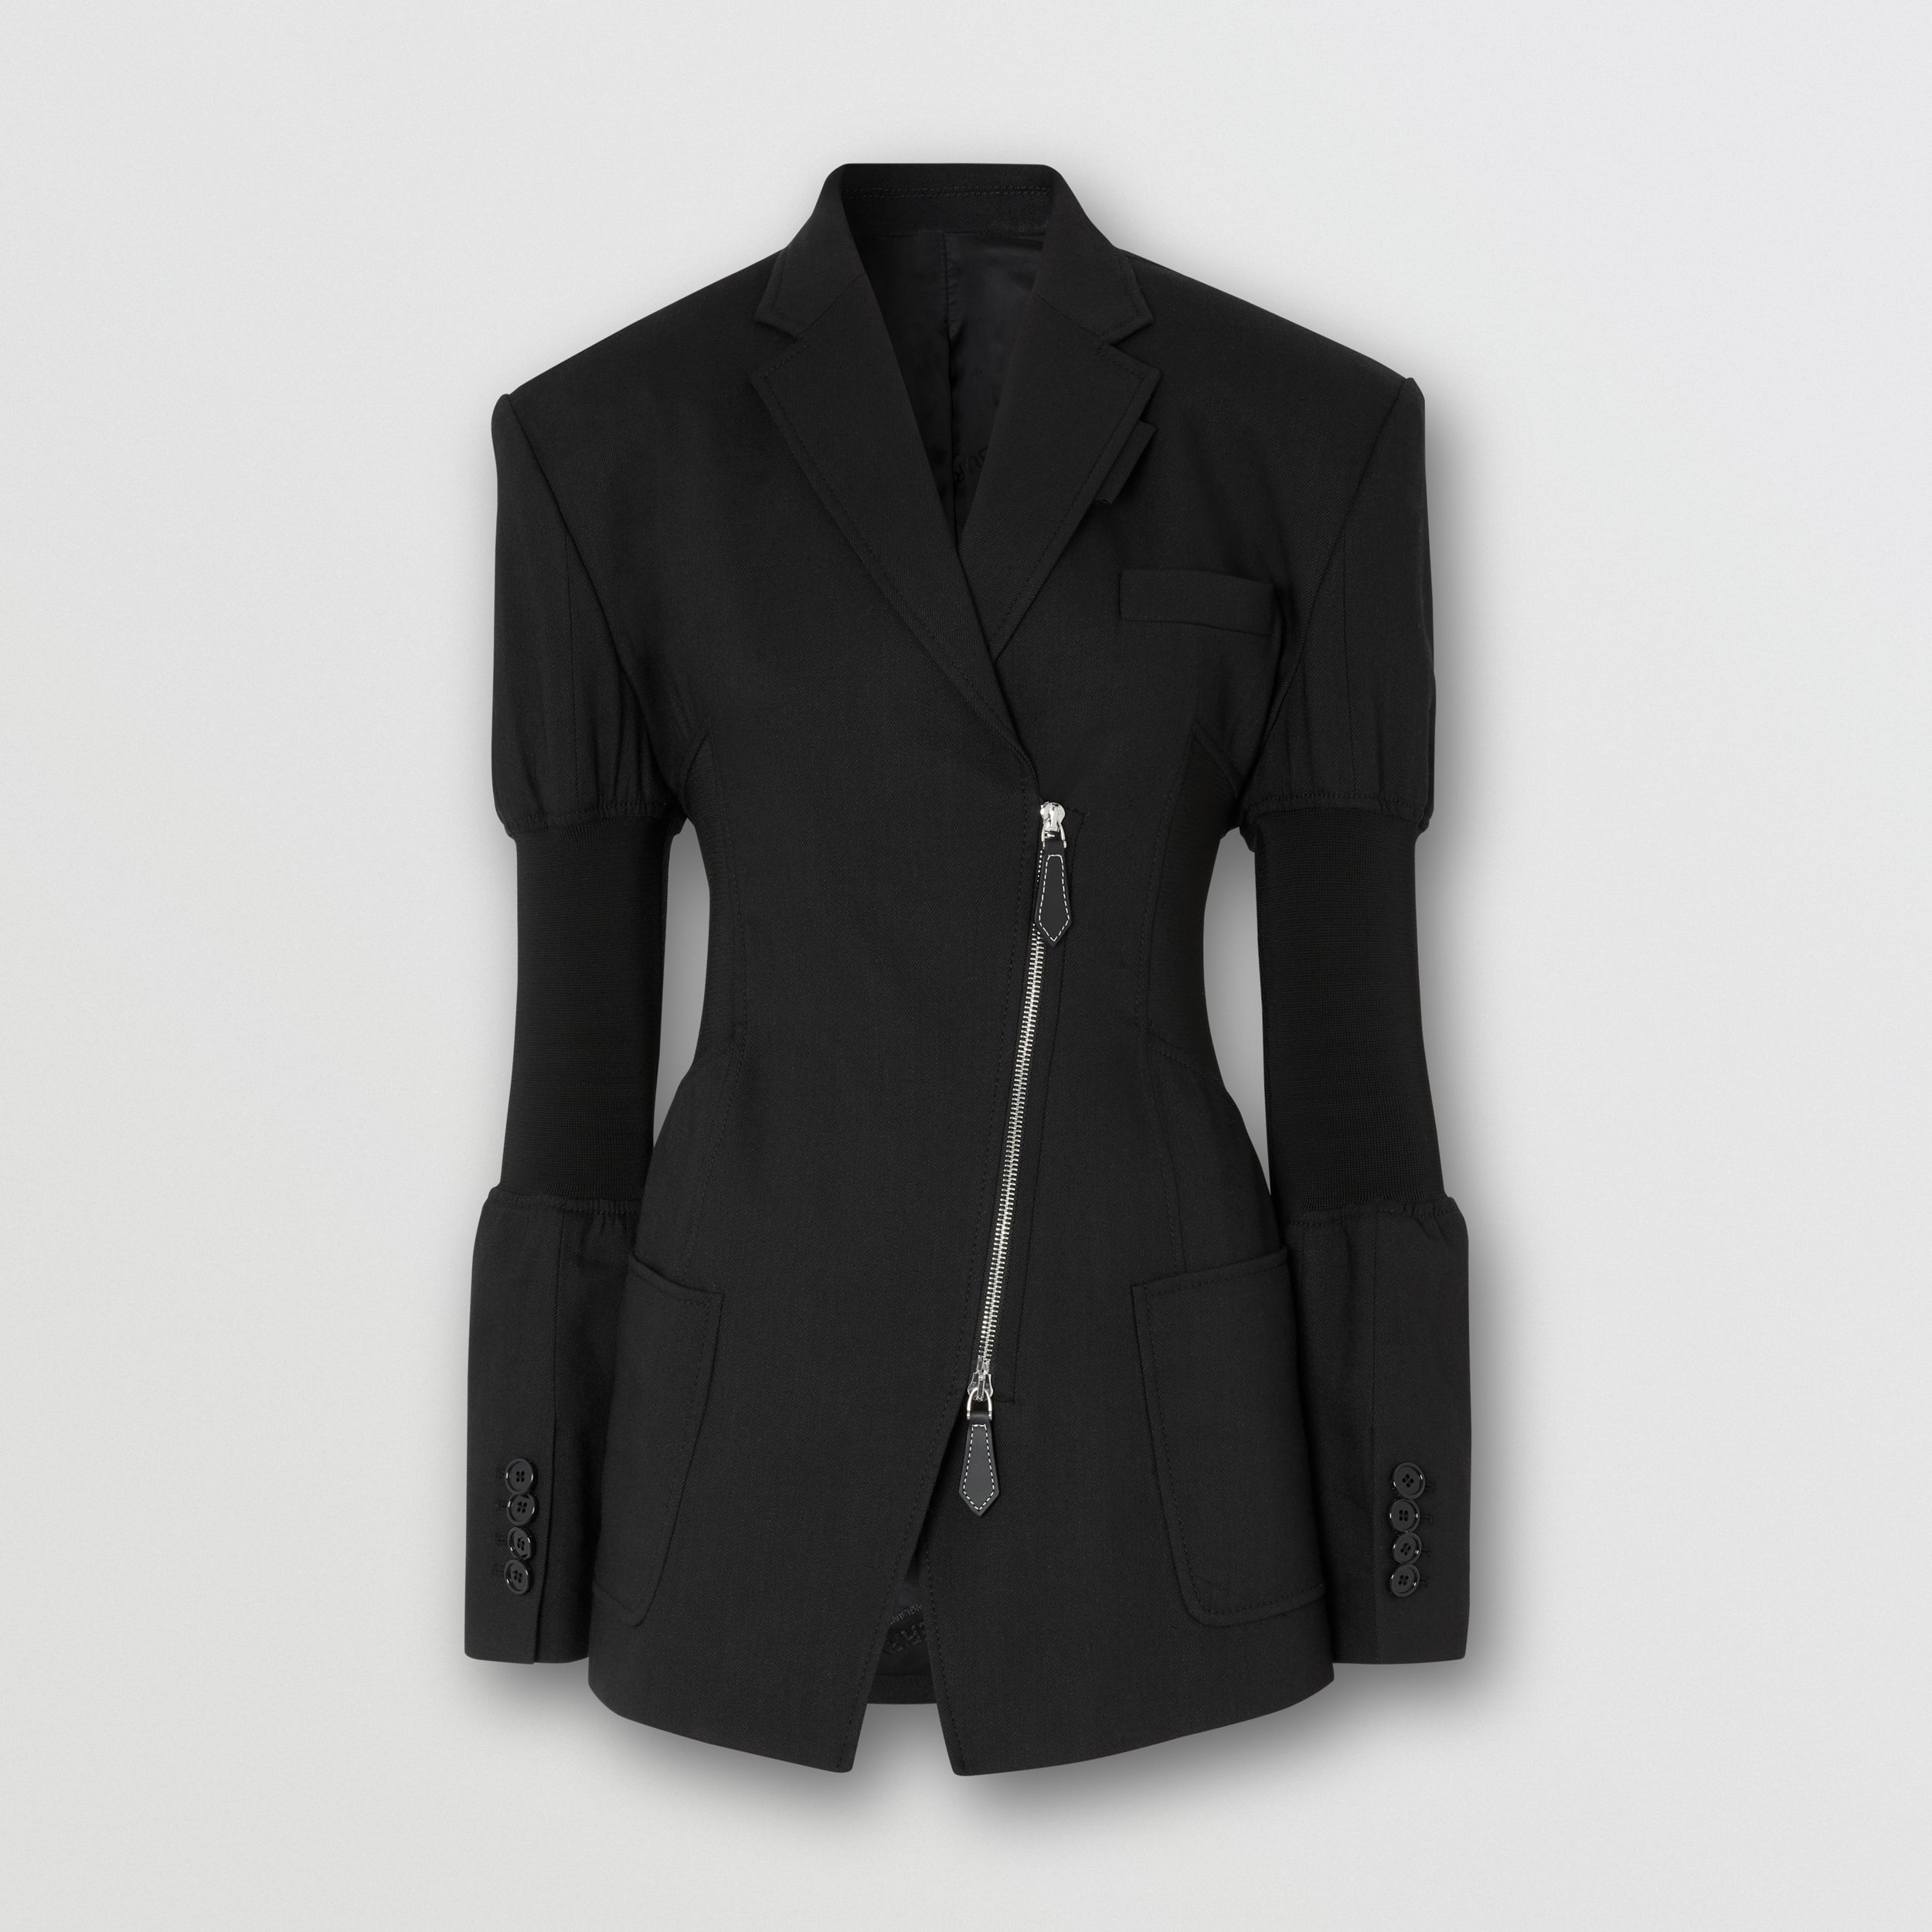 Technical Twill Reconstructed Blazer in Black - Women | Burberry - 4